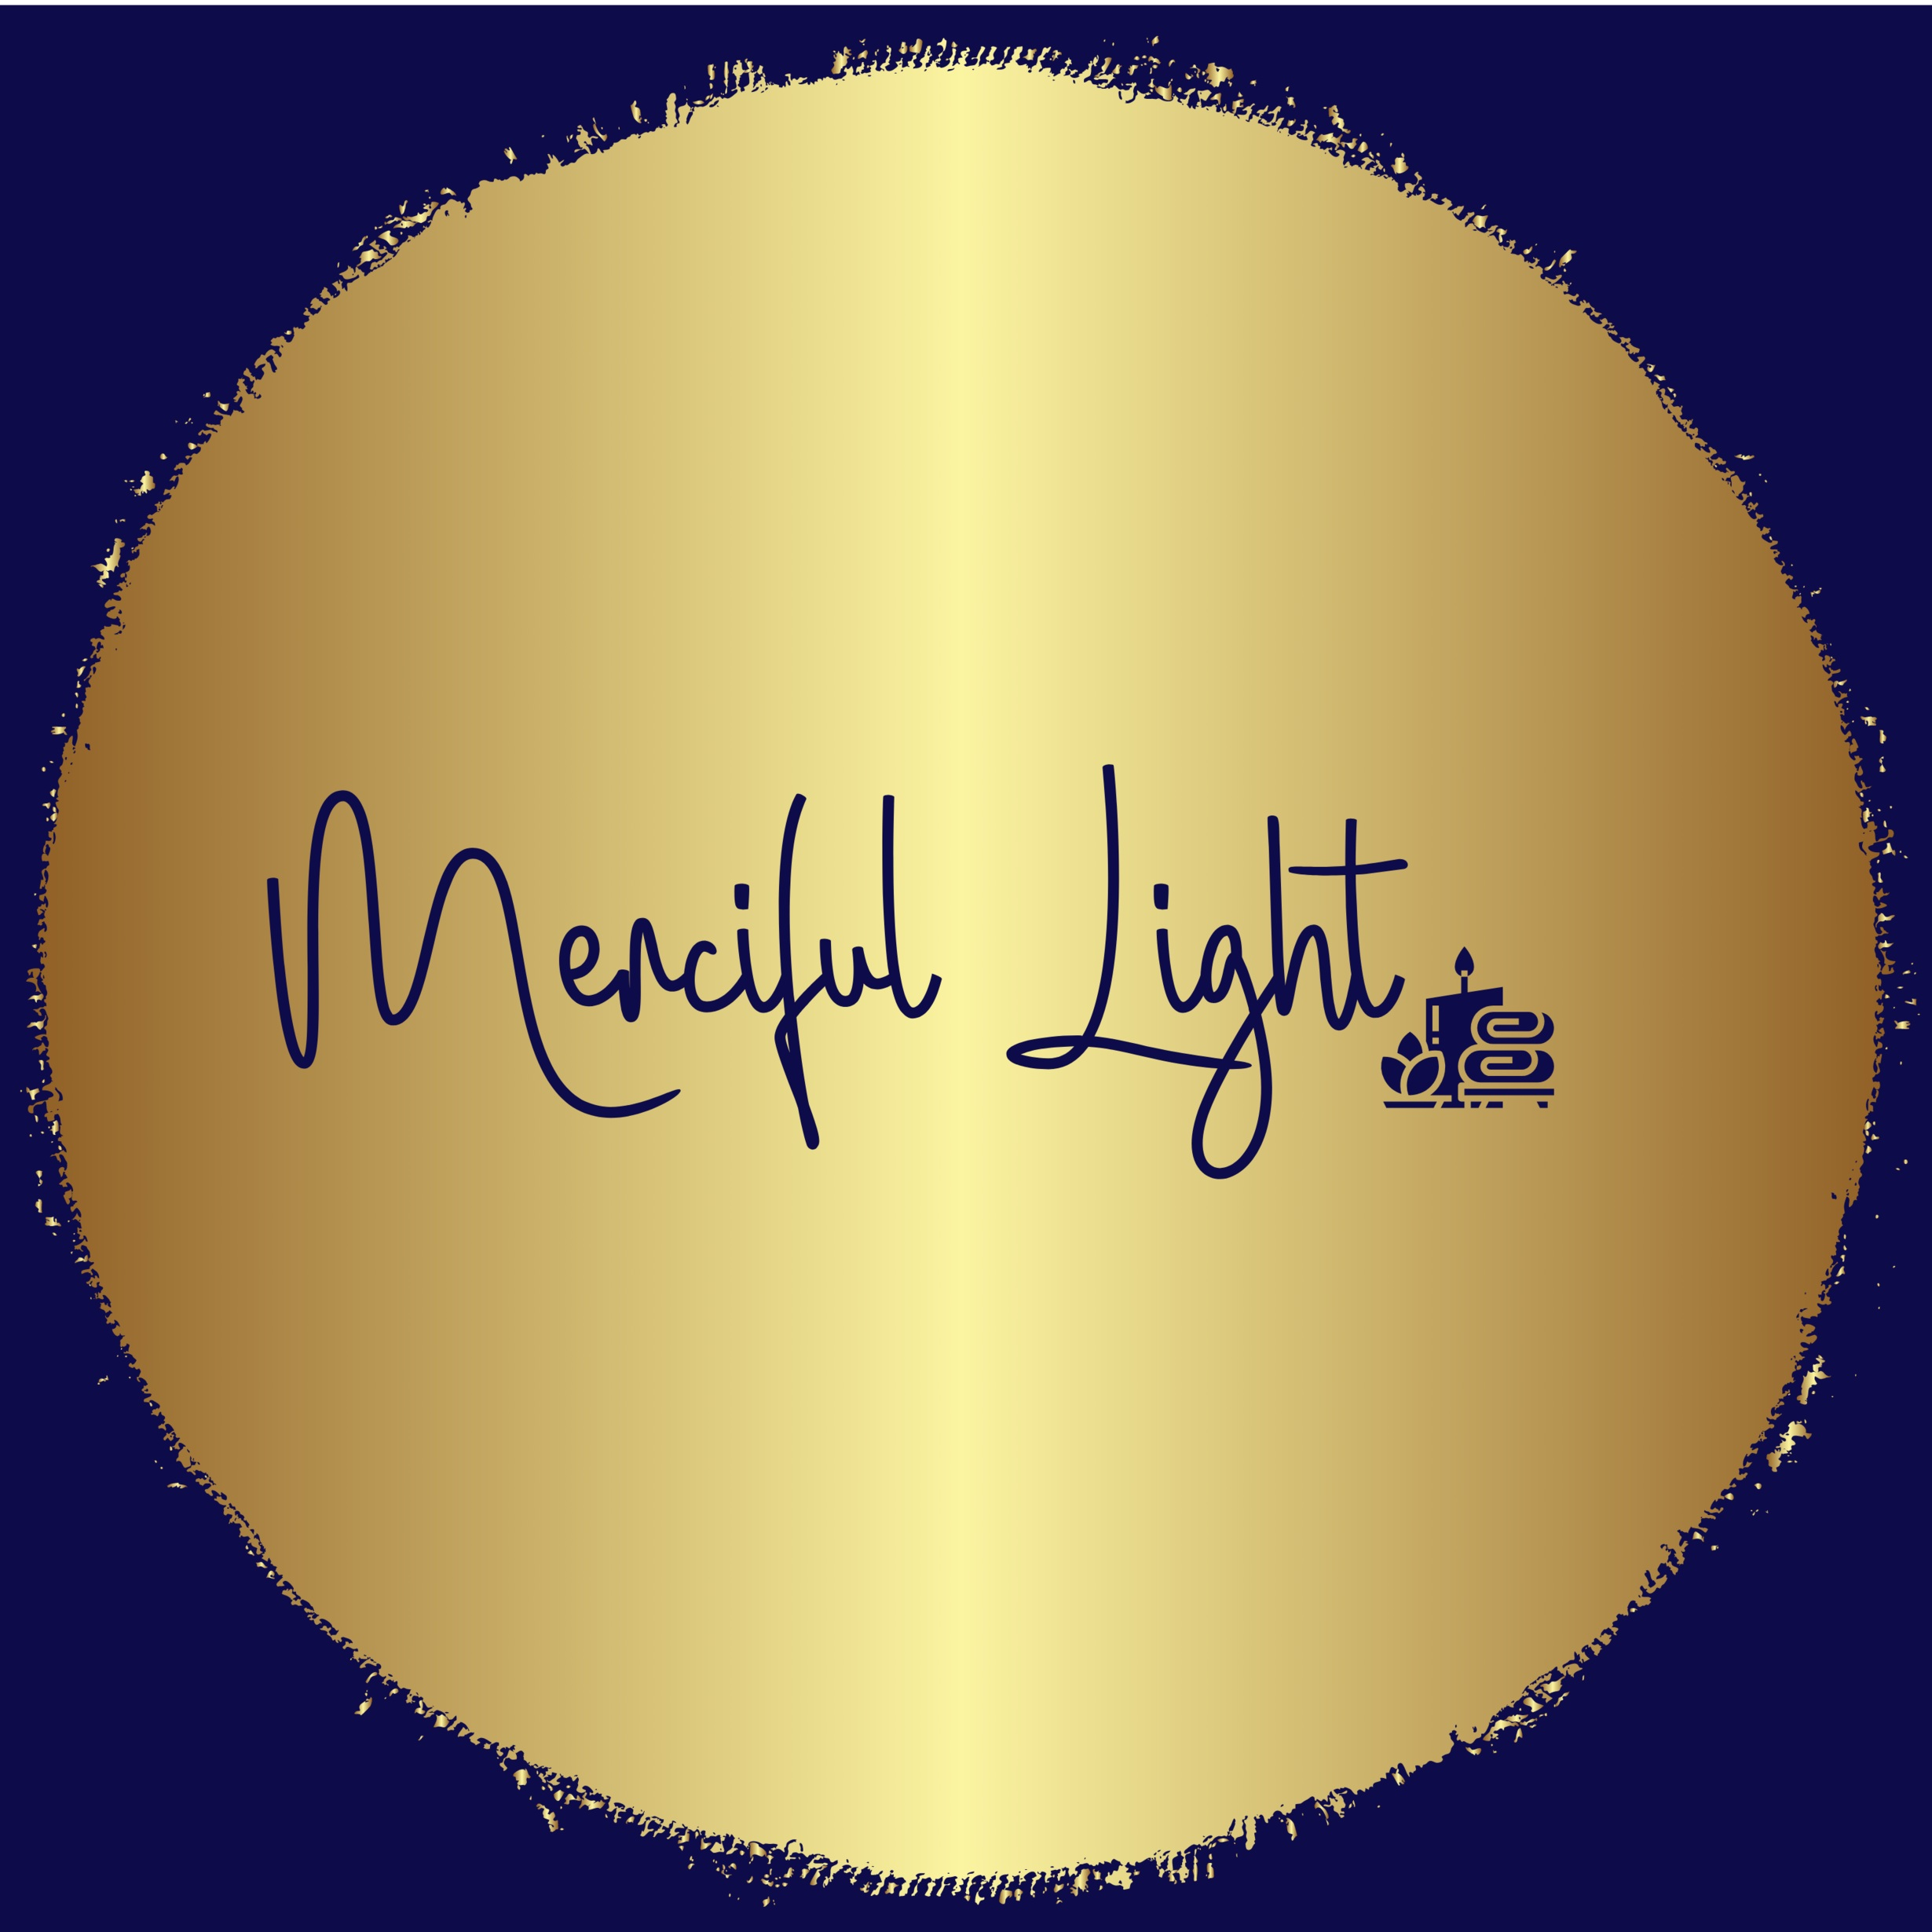 Merciful Light Wellness Center